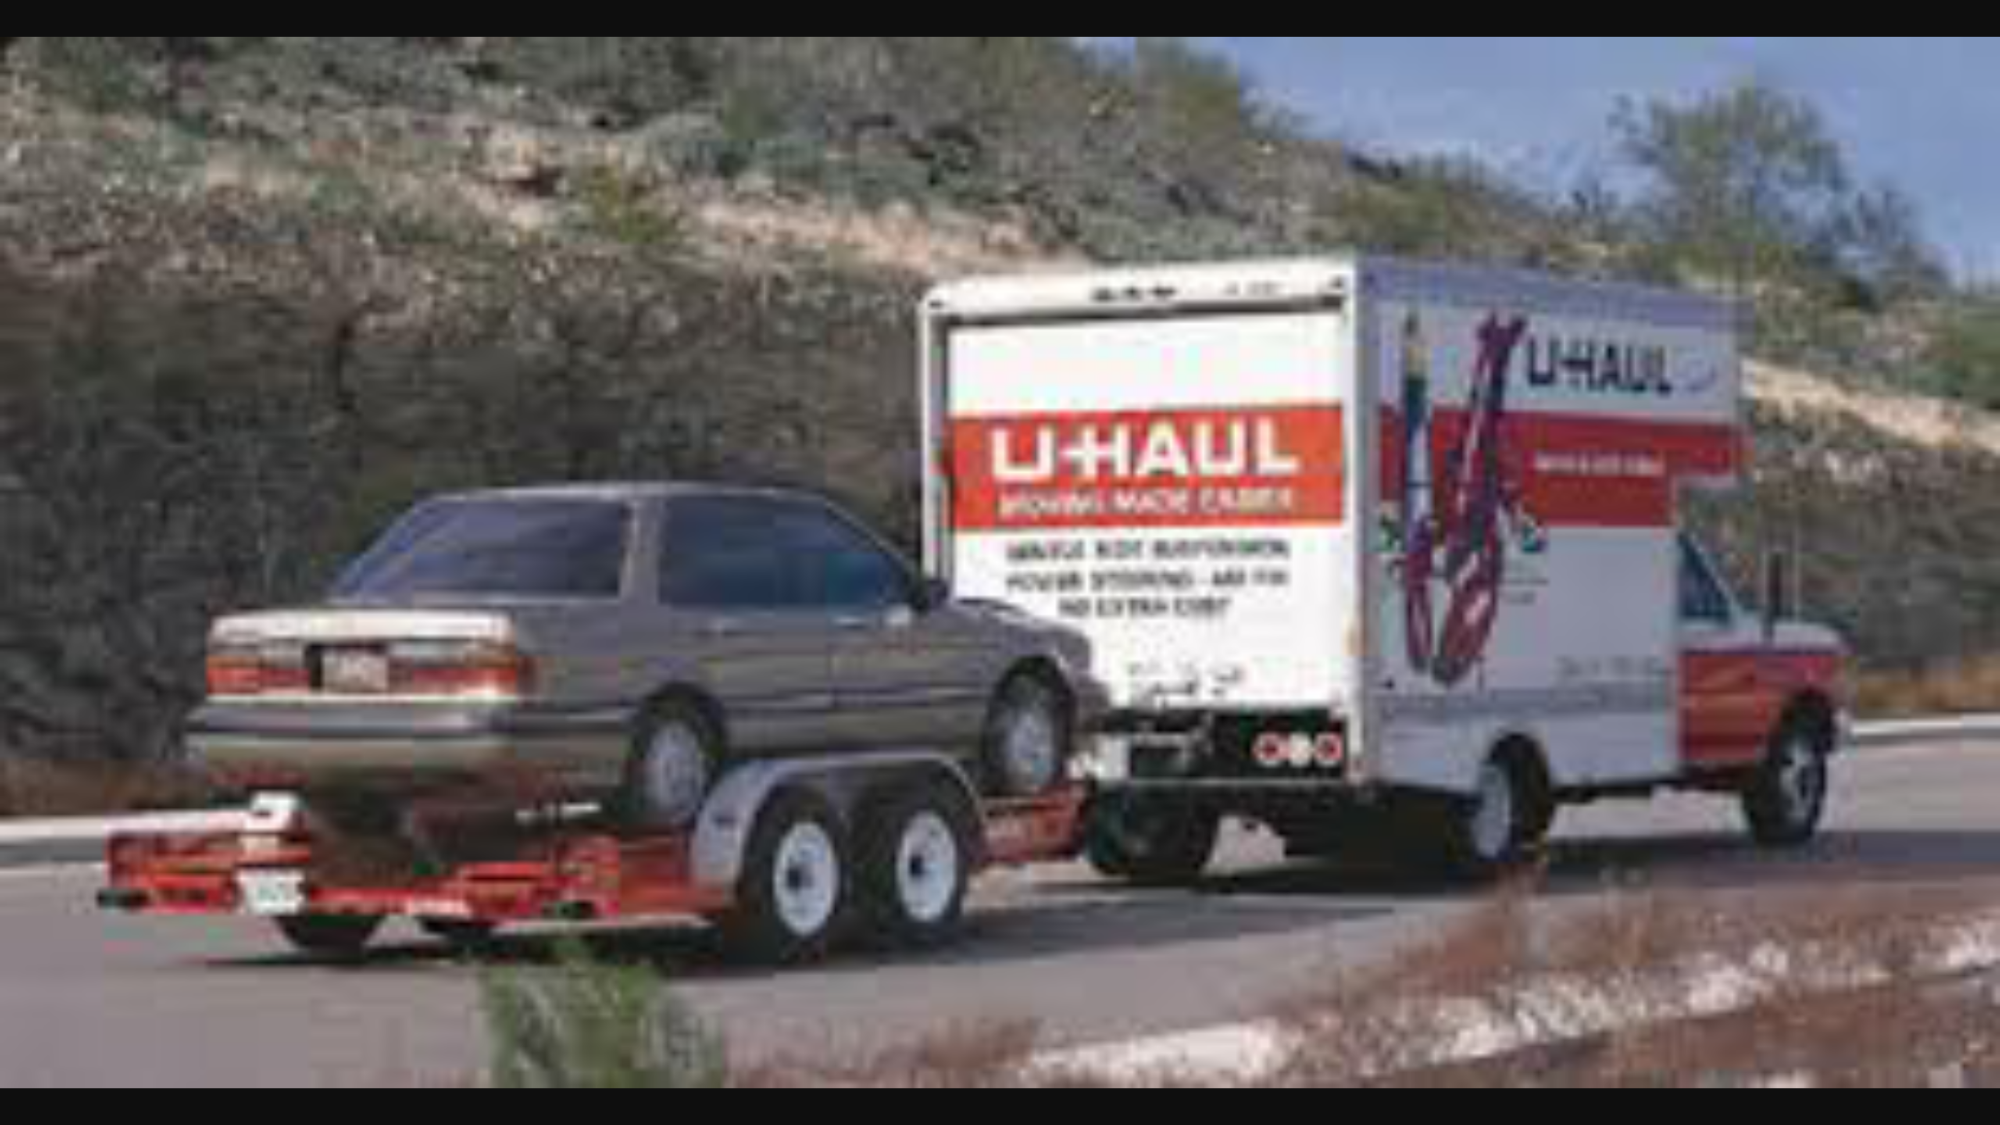 U-Haul is an American moving equipment and storage rental company, based in Phoenix, Arizona, that has been in operation since The company was founded by Leonard Shoen (L. S.